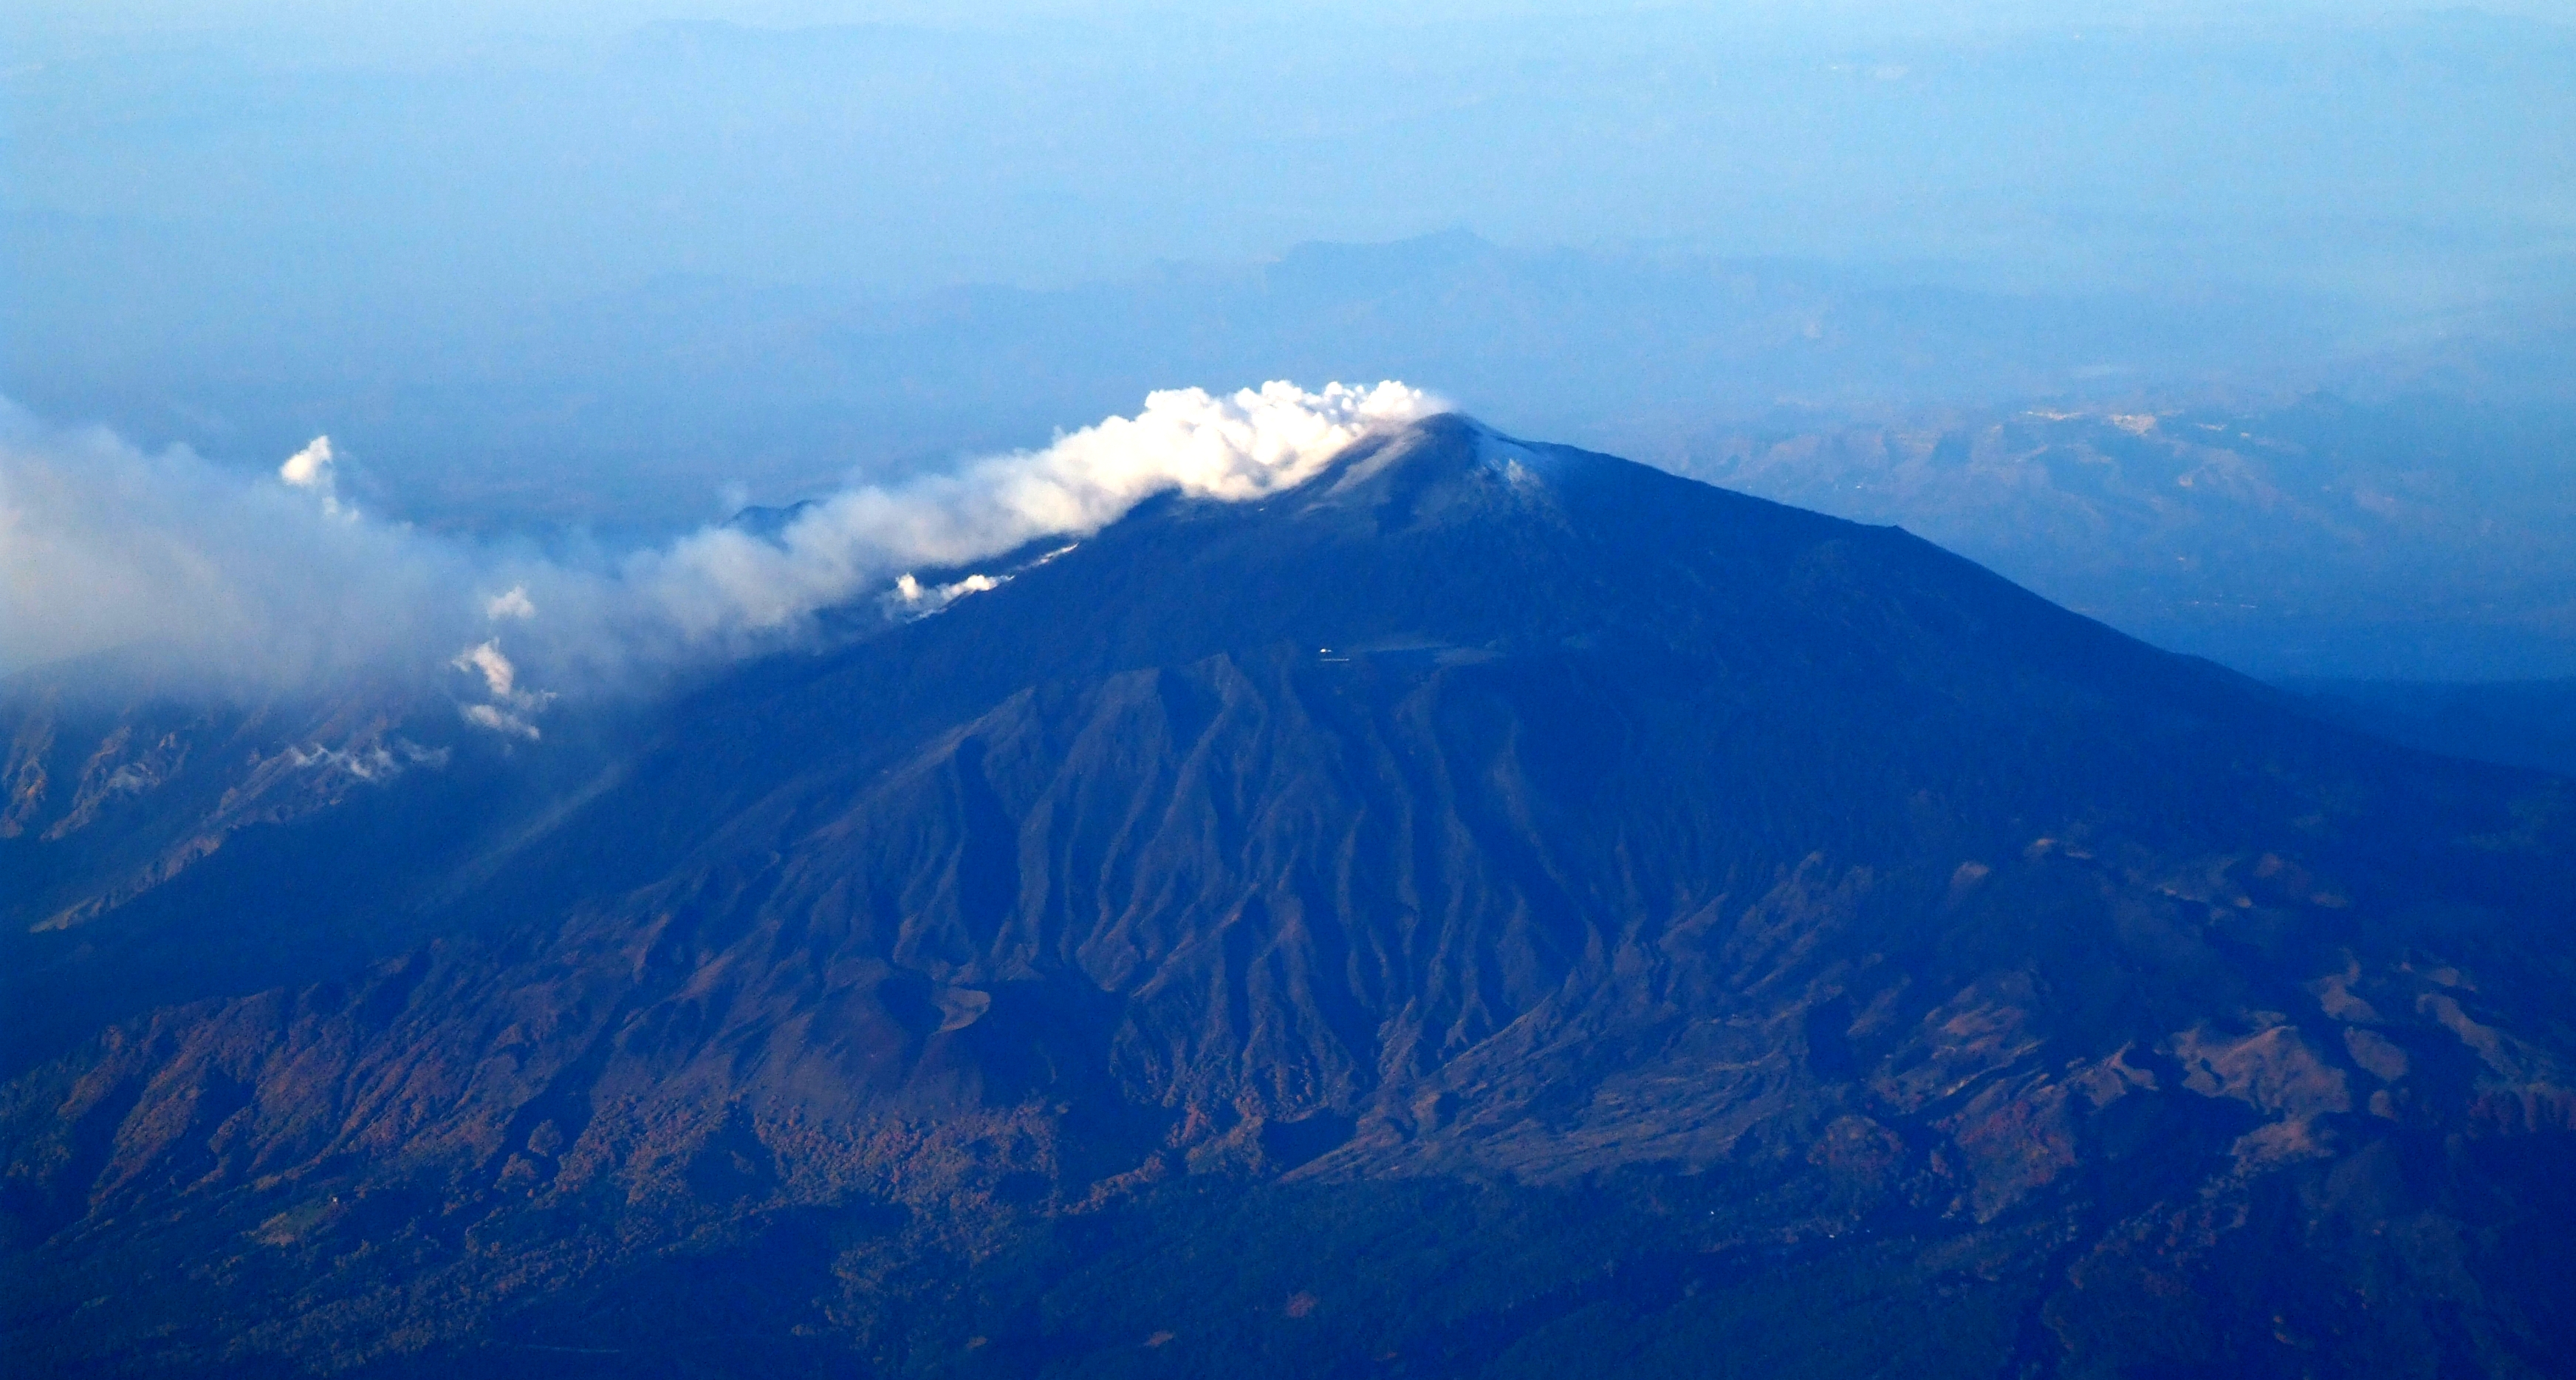 Italy-etna - etna volcano - creative commons by gnuckx photo